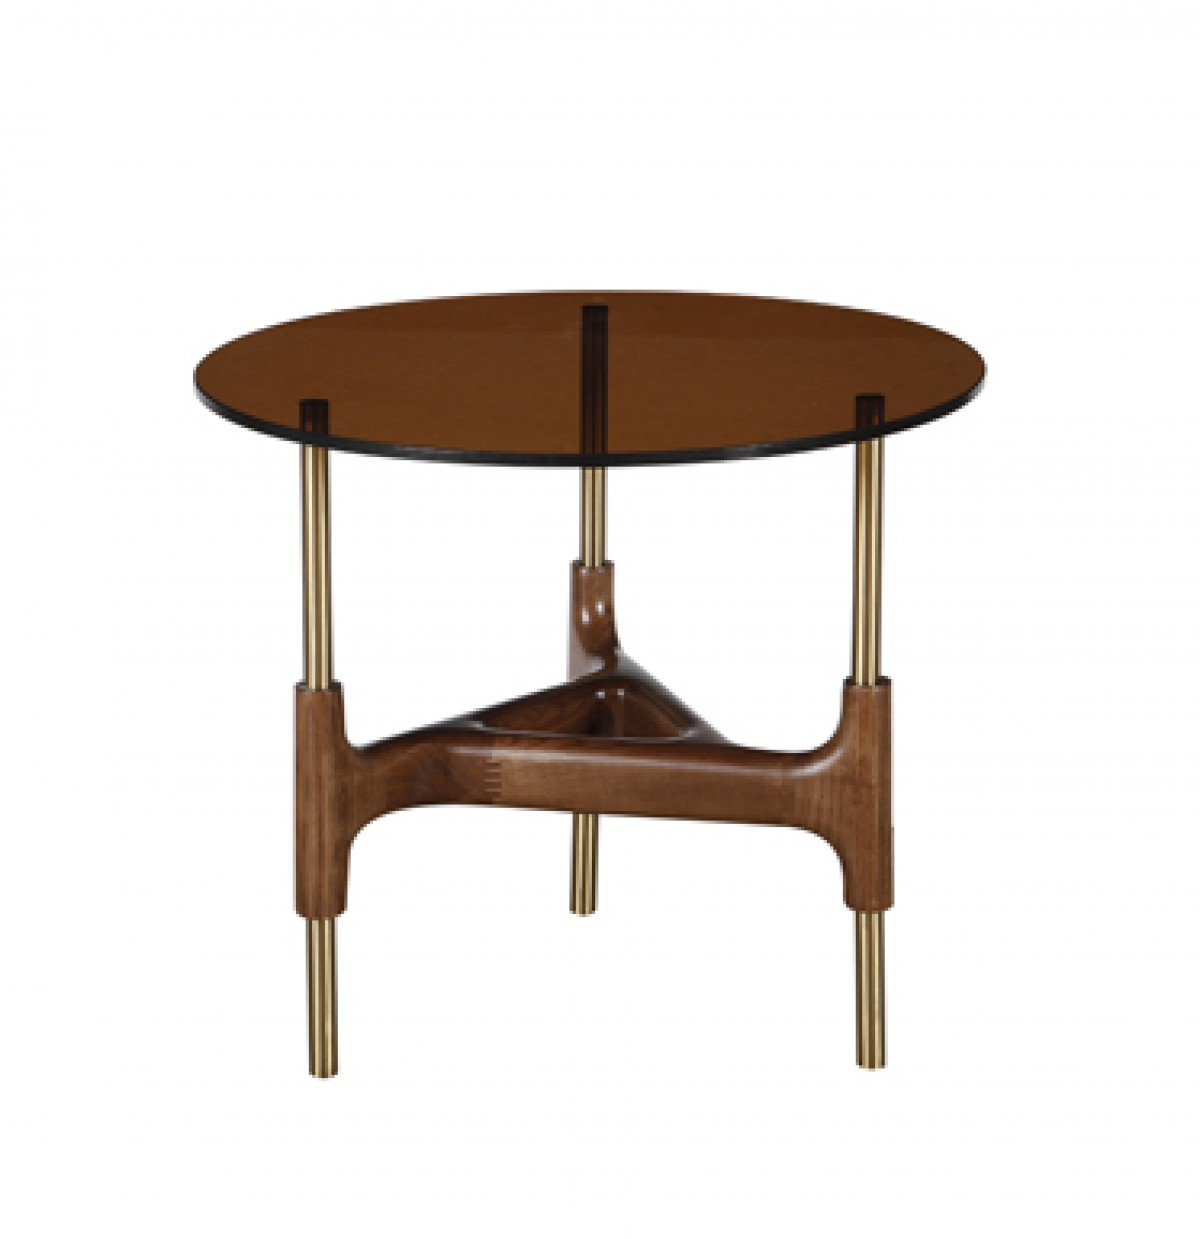 Modrest Lawson Modern Round Walnut & Glass End Table